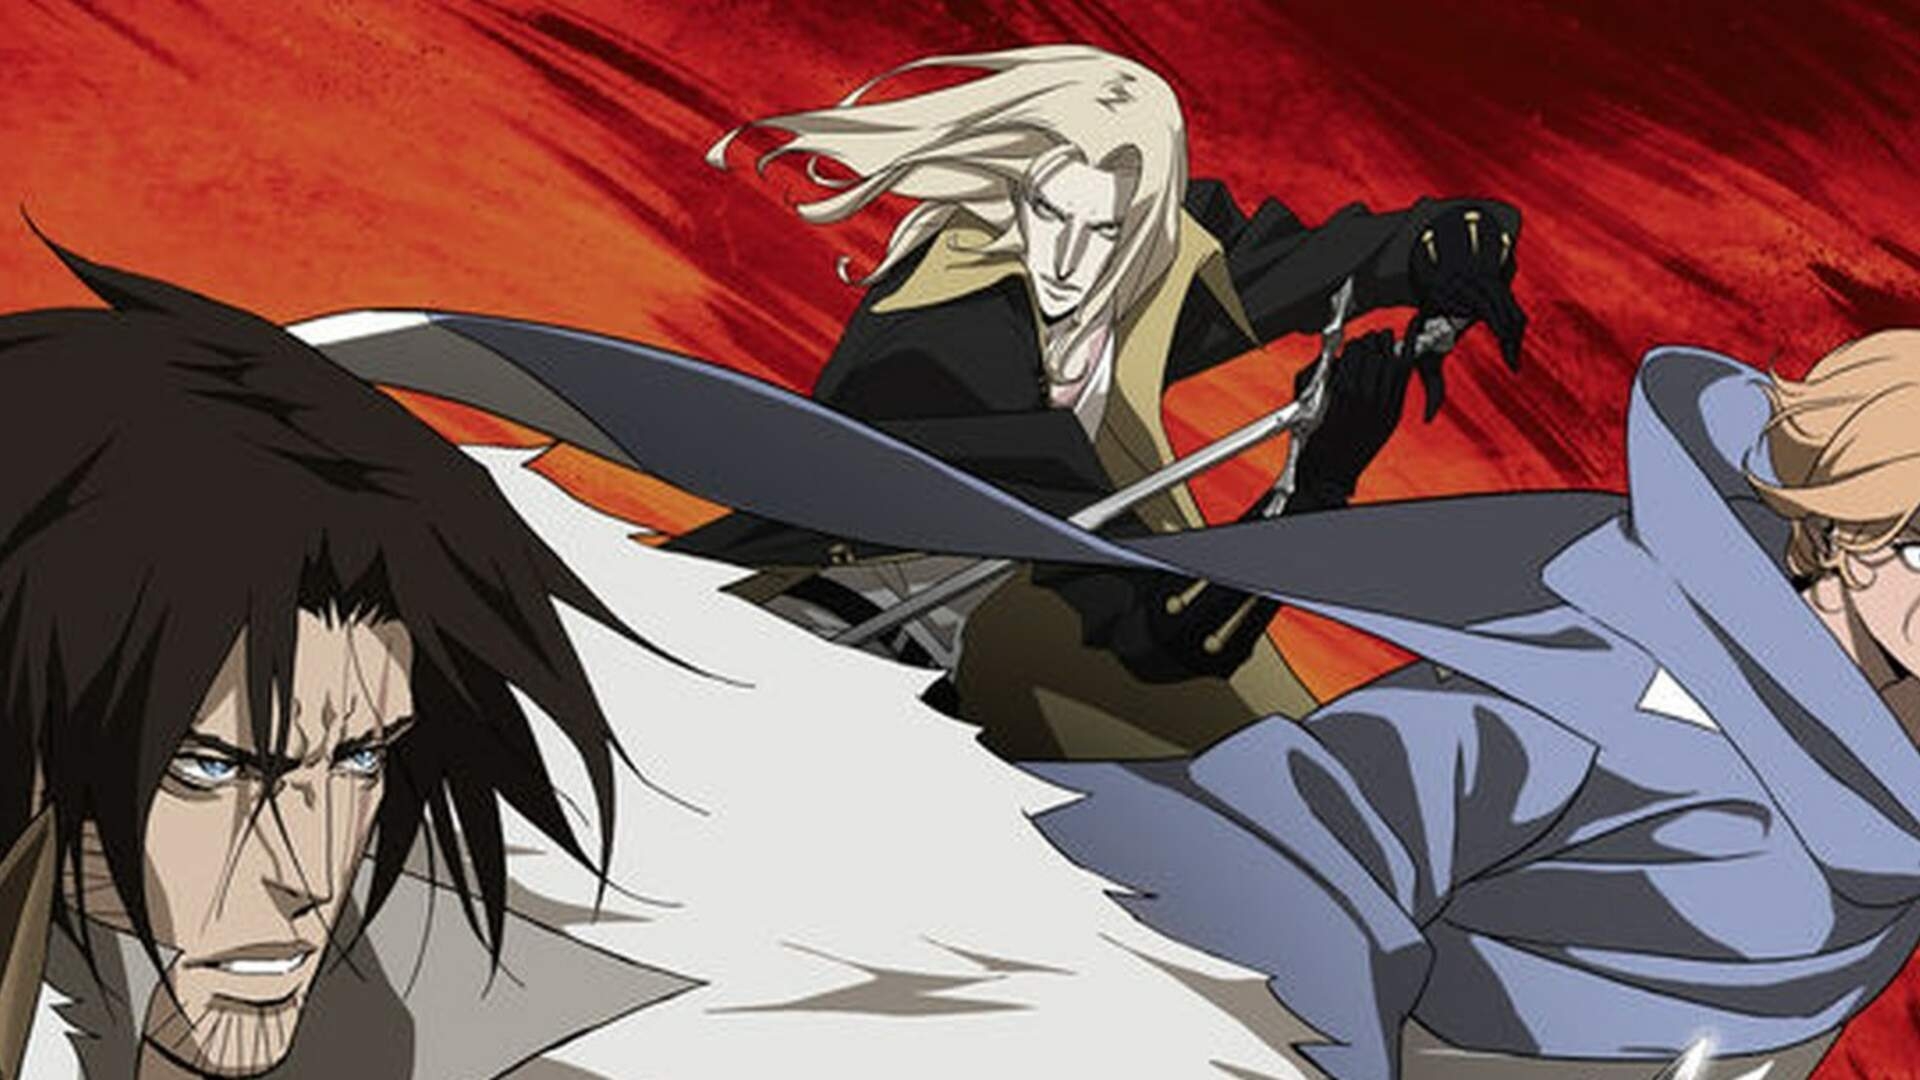 Castlevania Anime Season 2 Release Date Announced for Netflix